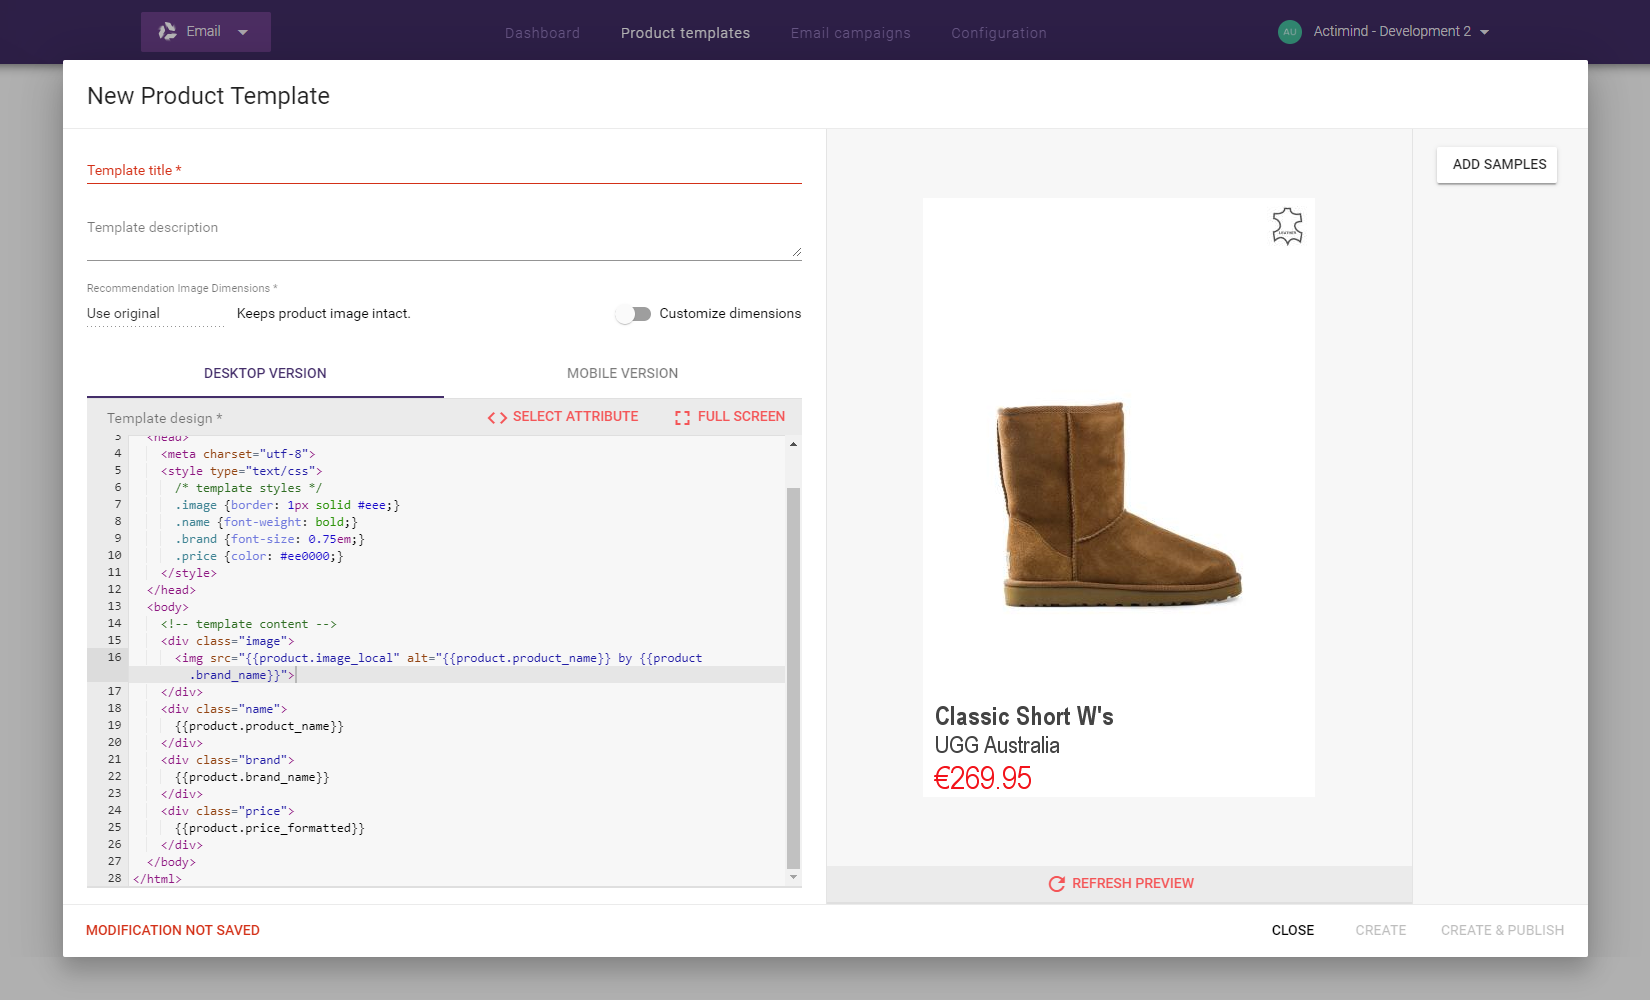 Email Recommendations - Product Templates - Preview template